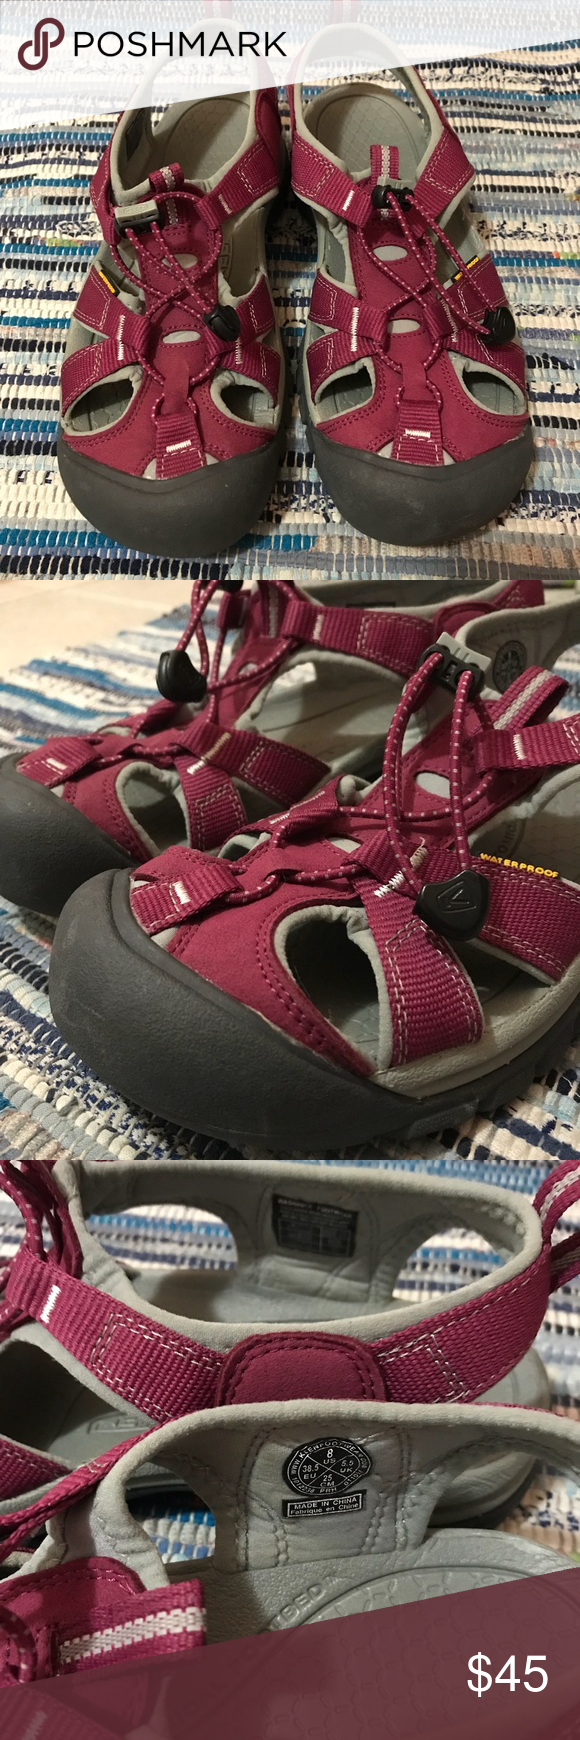 c4af4f5fe6da Keen Venice H2 in Beet Red and Neutral Gray Keen Women s Venice H2 sandal  in excellent used condition. Color is beet red and neutral gray.